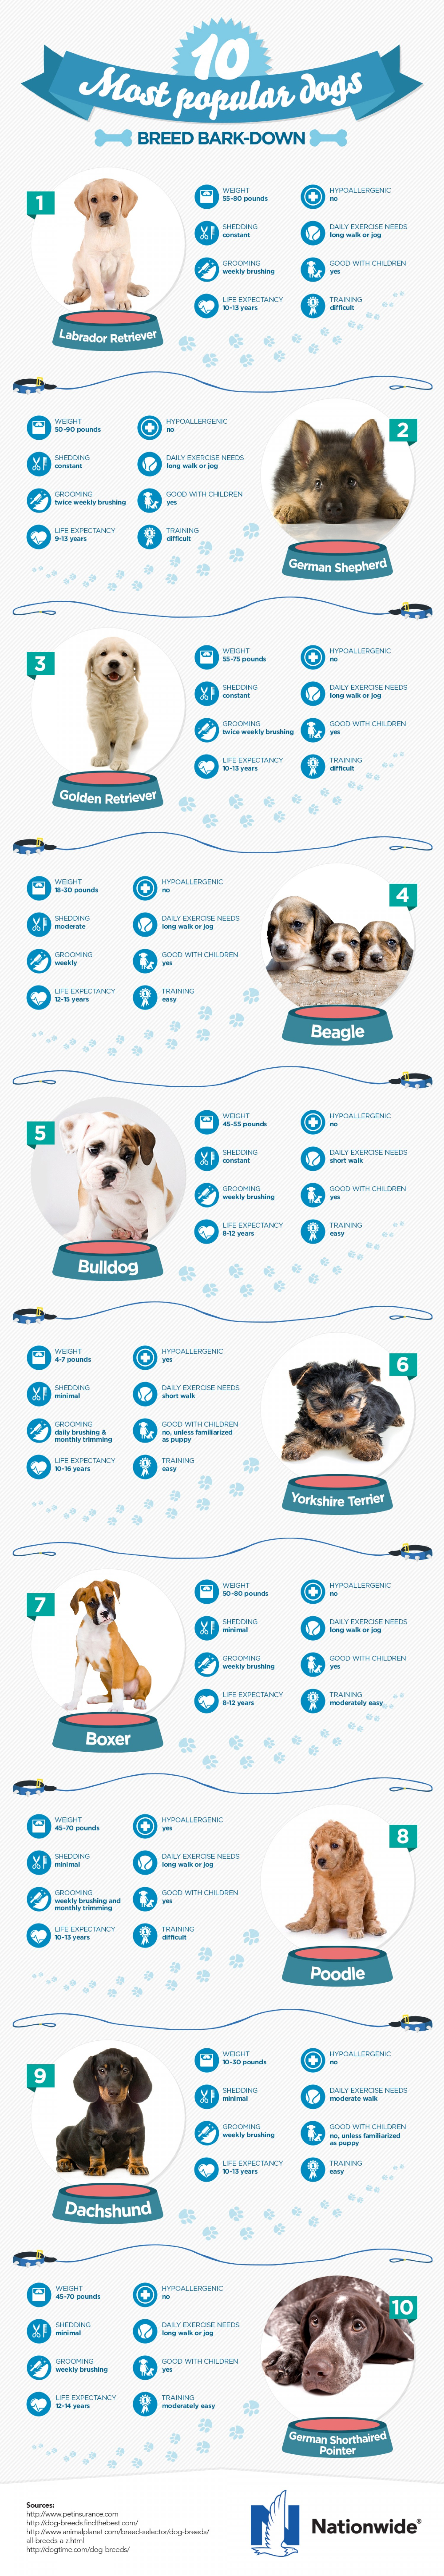 Top 10 Most Popular Dog Breeds